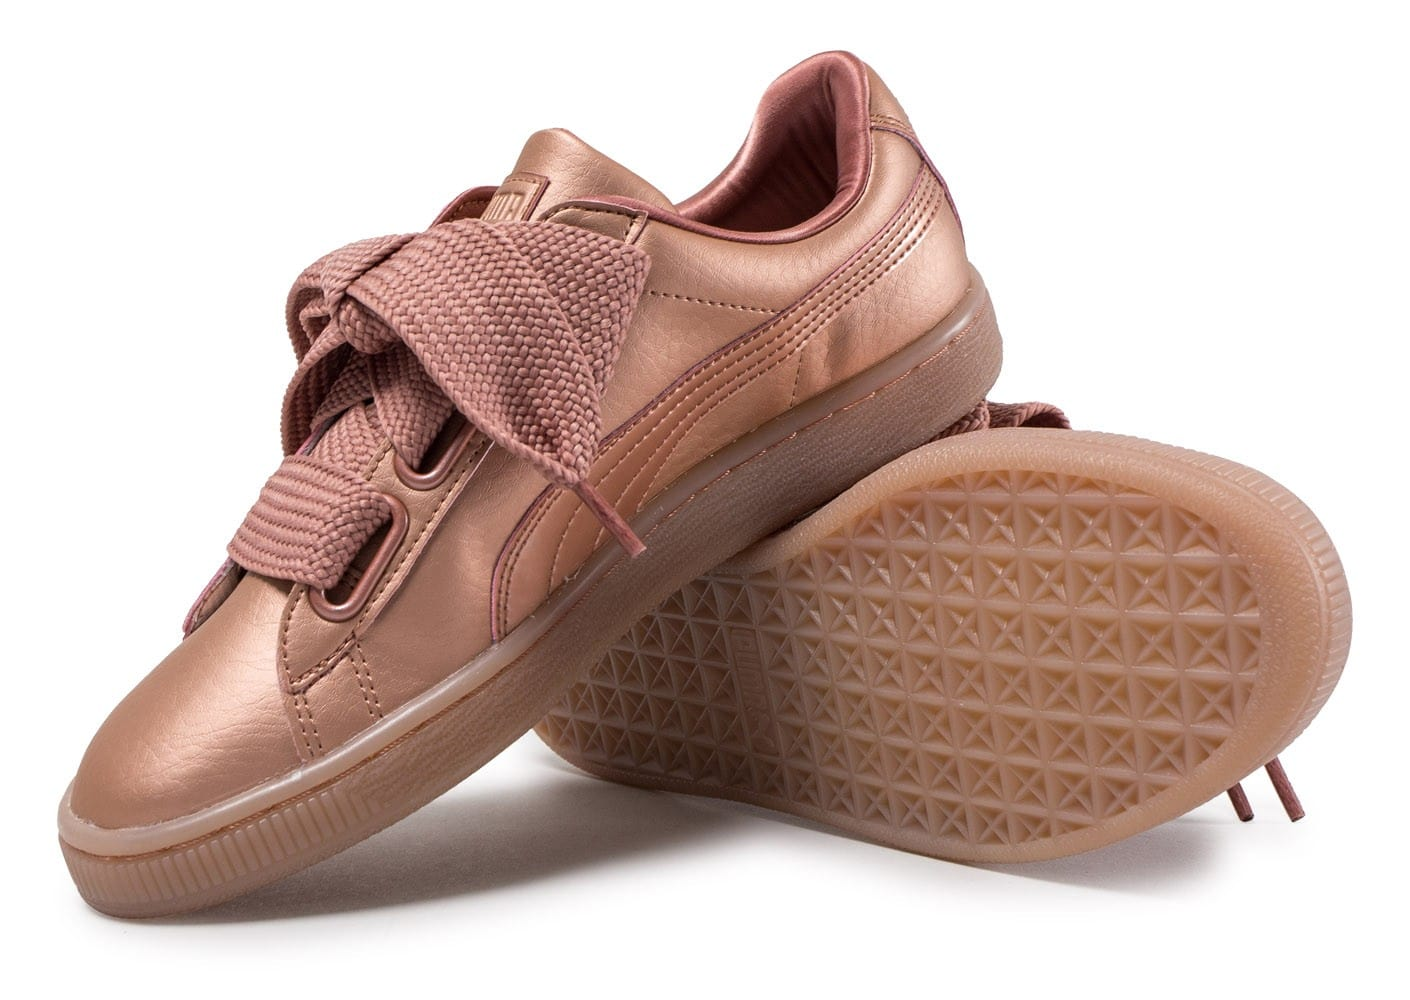 puma basket heart copper chaussures black friday chausport. Black Bedroom Furniture Sets. Home Design Ideas